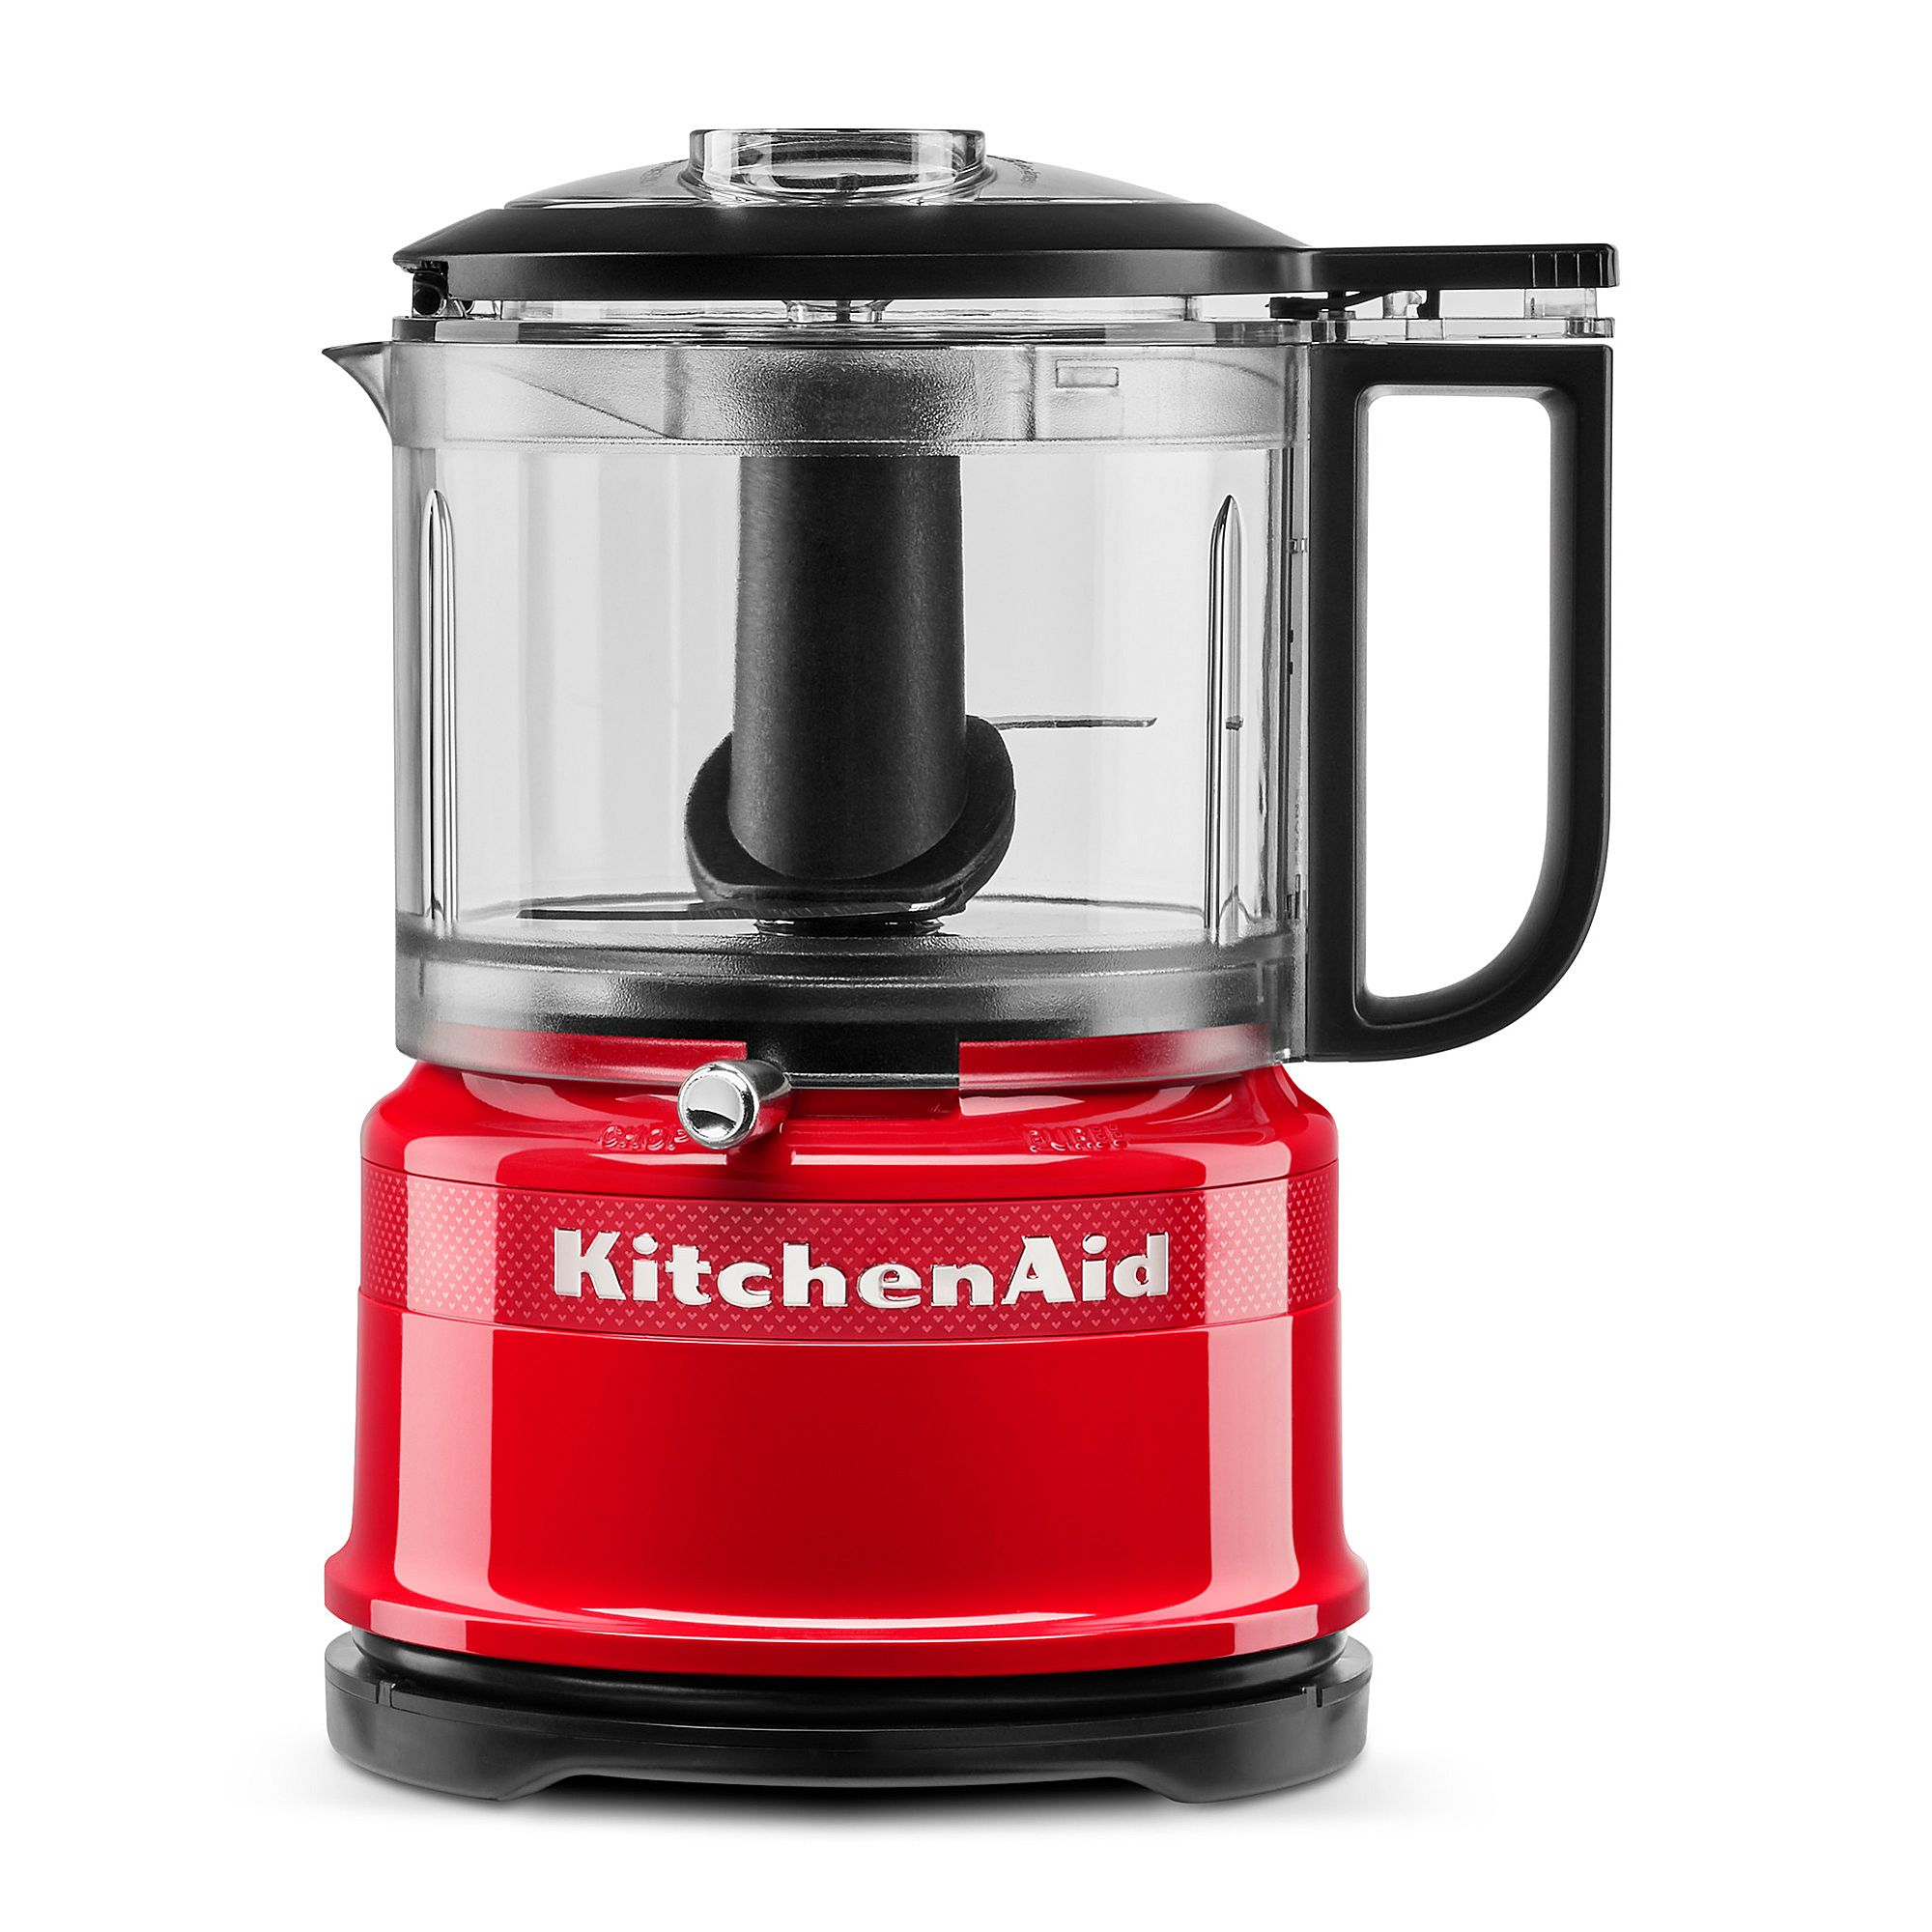 Kitchenaid Küchenmaschine Video Kitchenaid Food Processor One Touch Bedienung 240w 2 Stufen Doppelklinge Qvc De